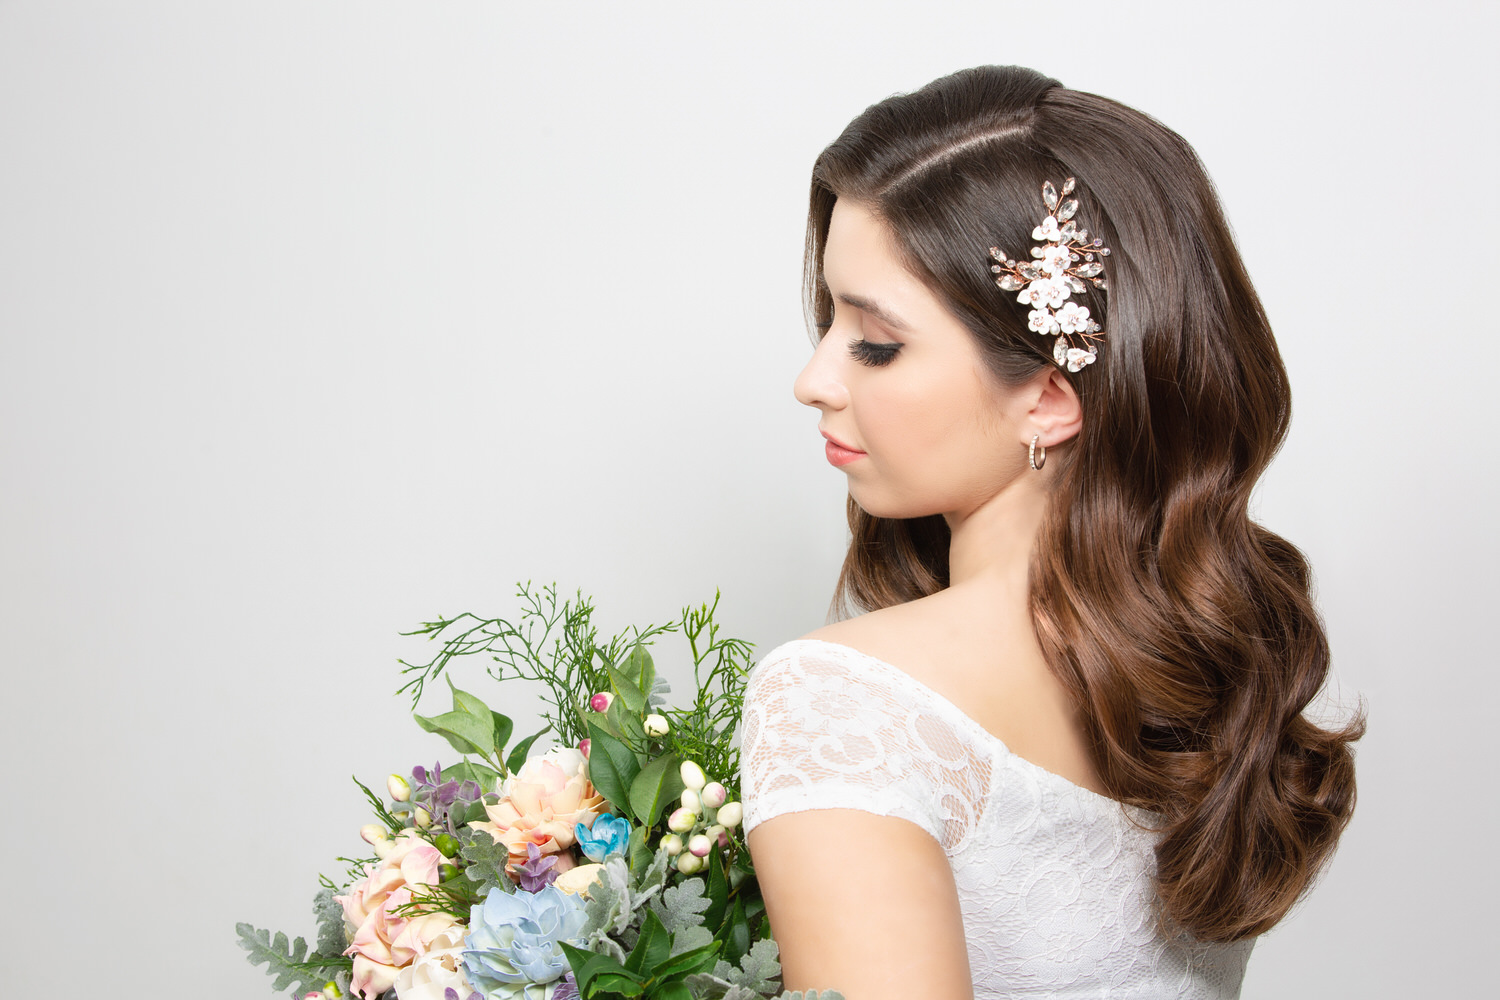 Brunette haired model holding wedding bouquet